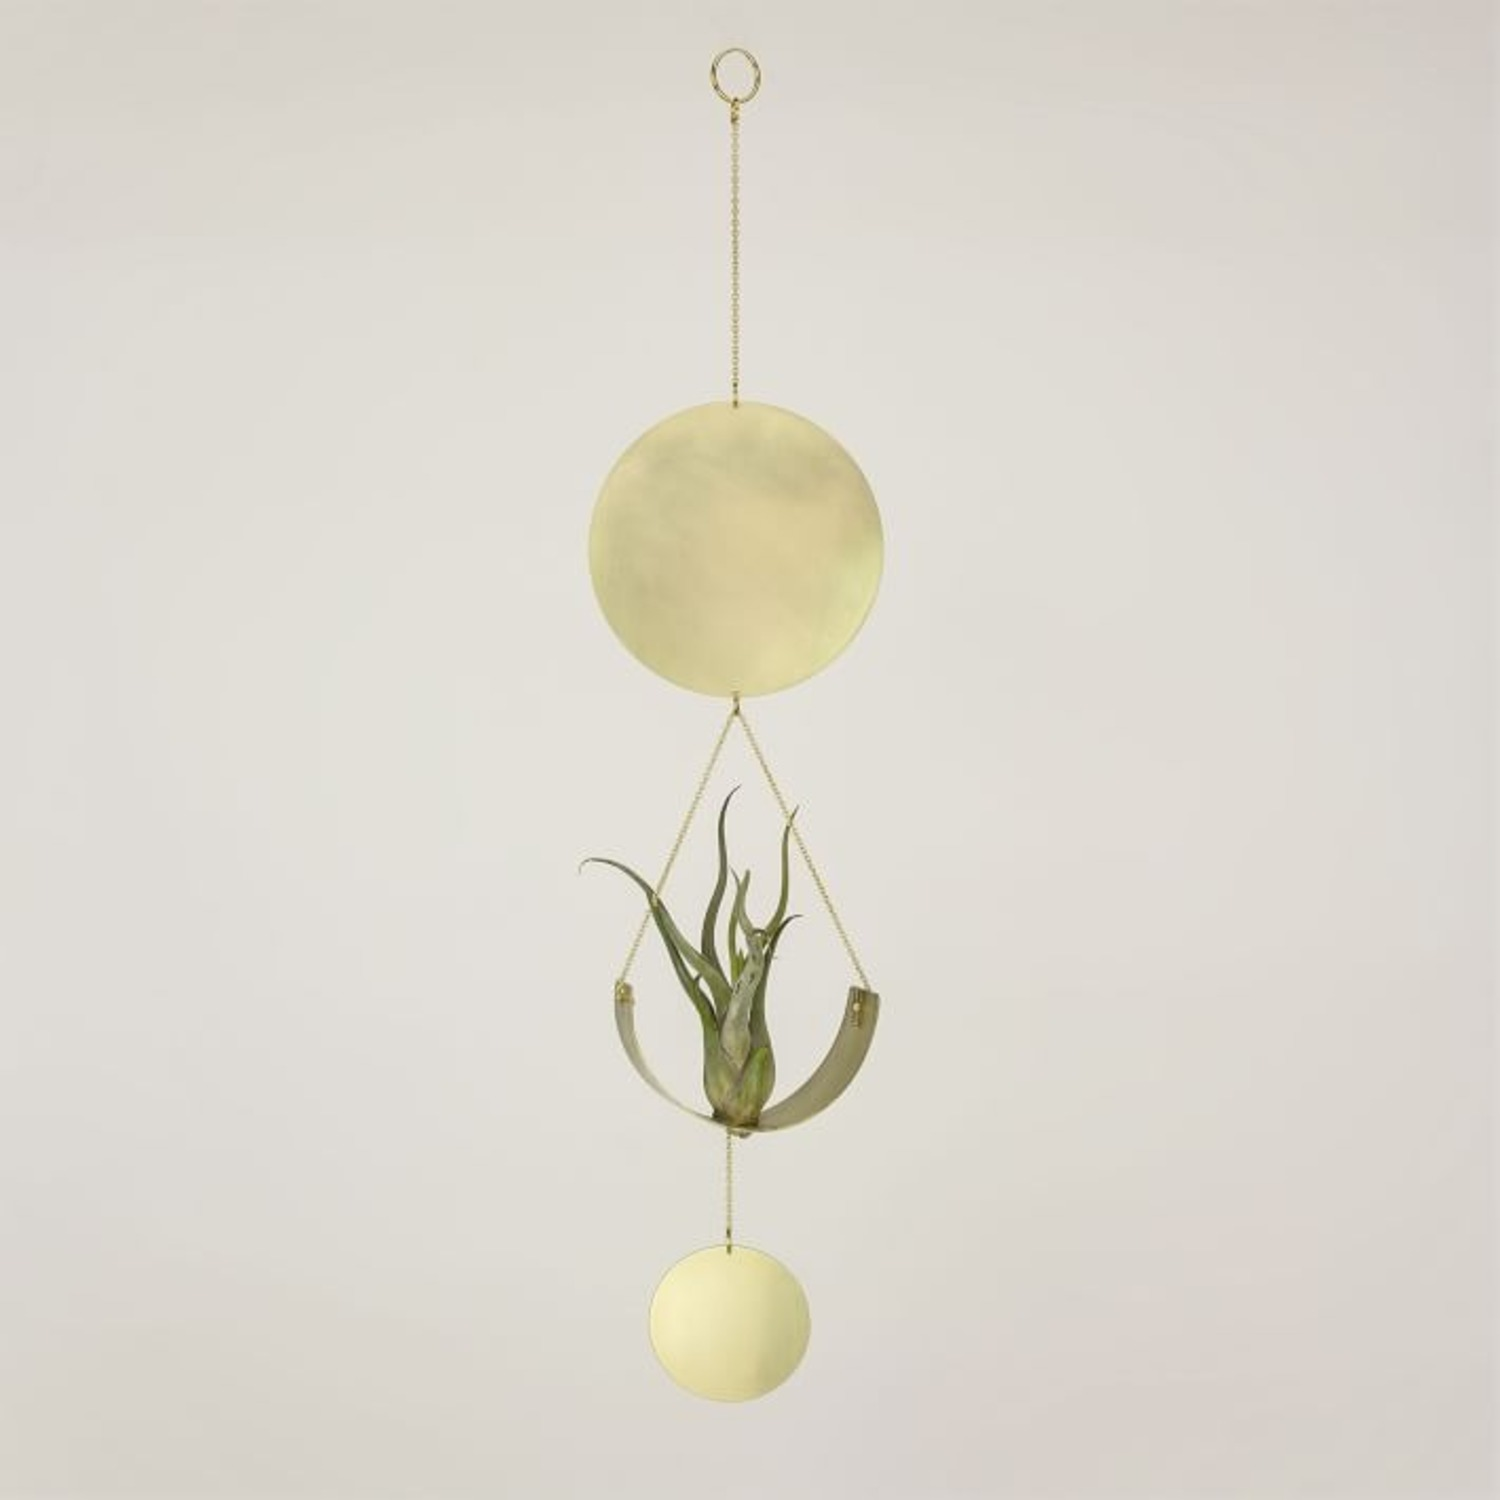 West Elm Airplant Wall Hanging, Brass - image-3